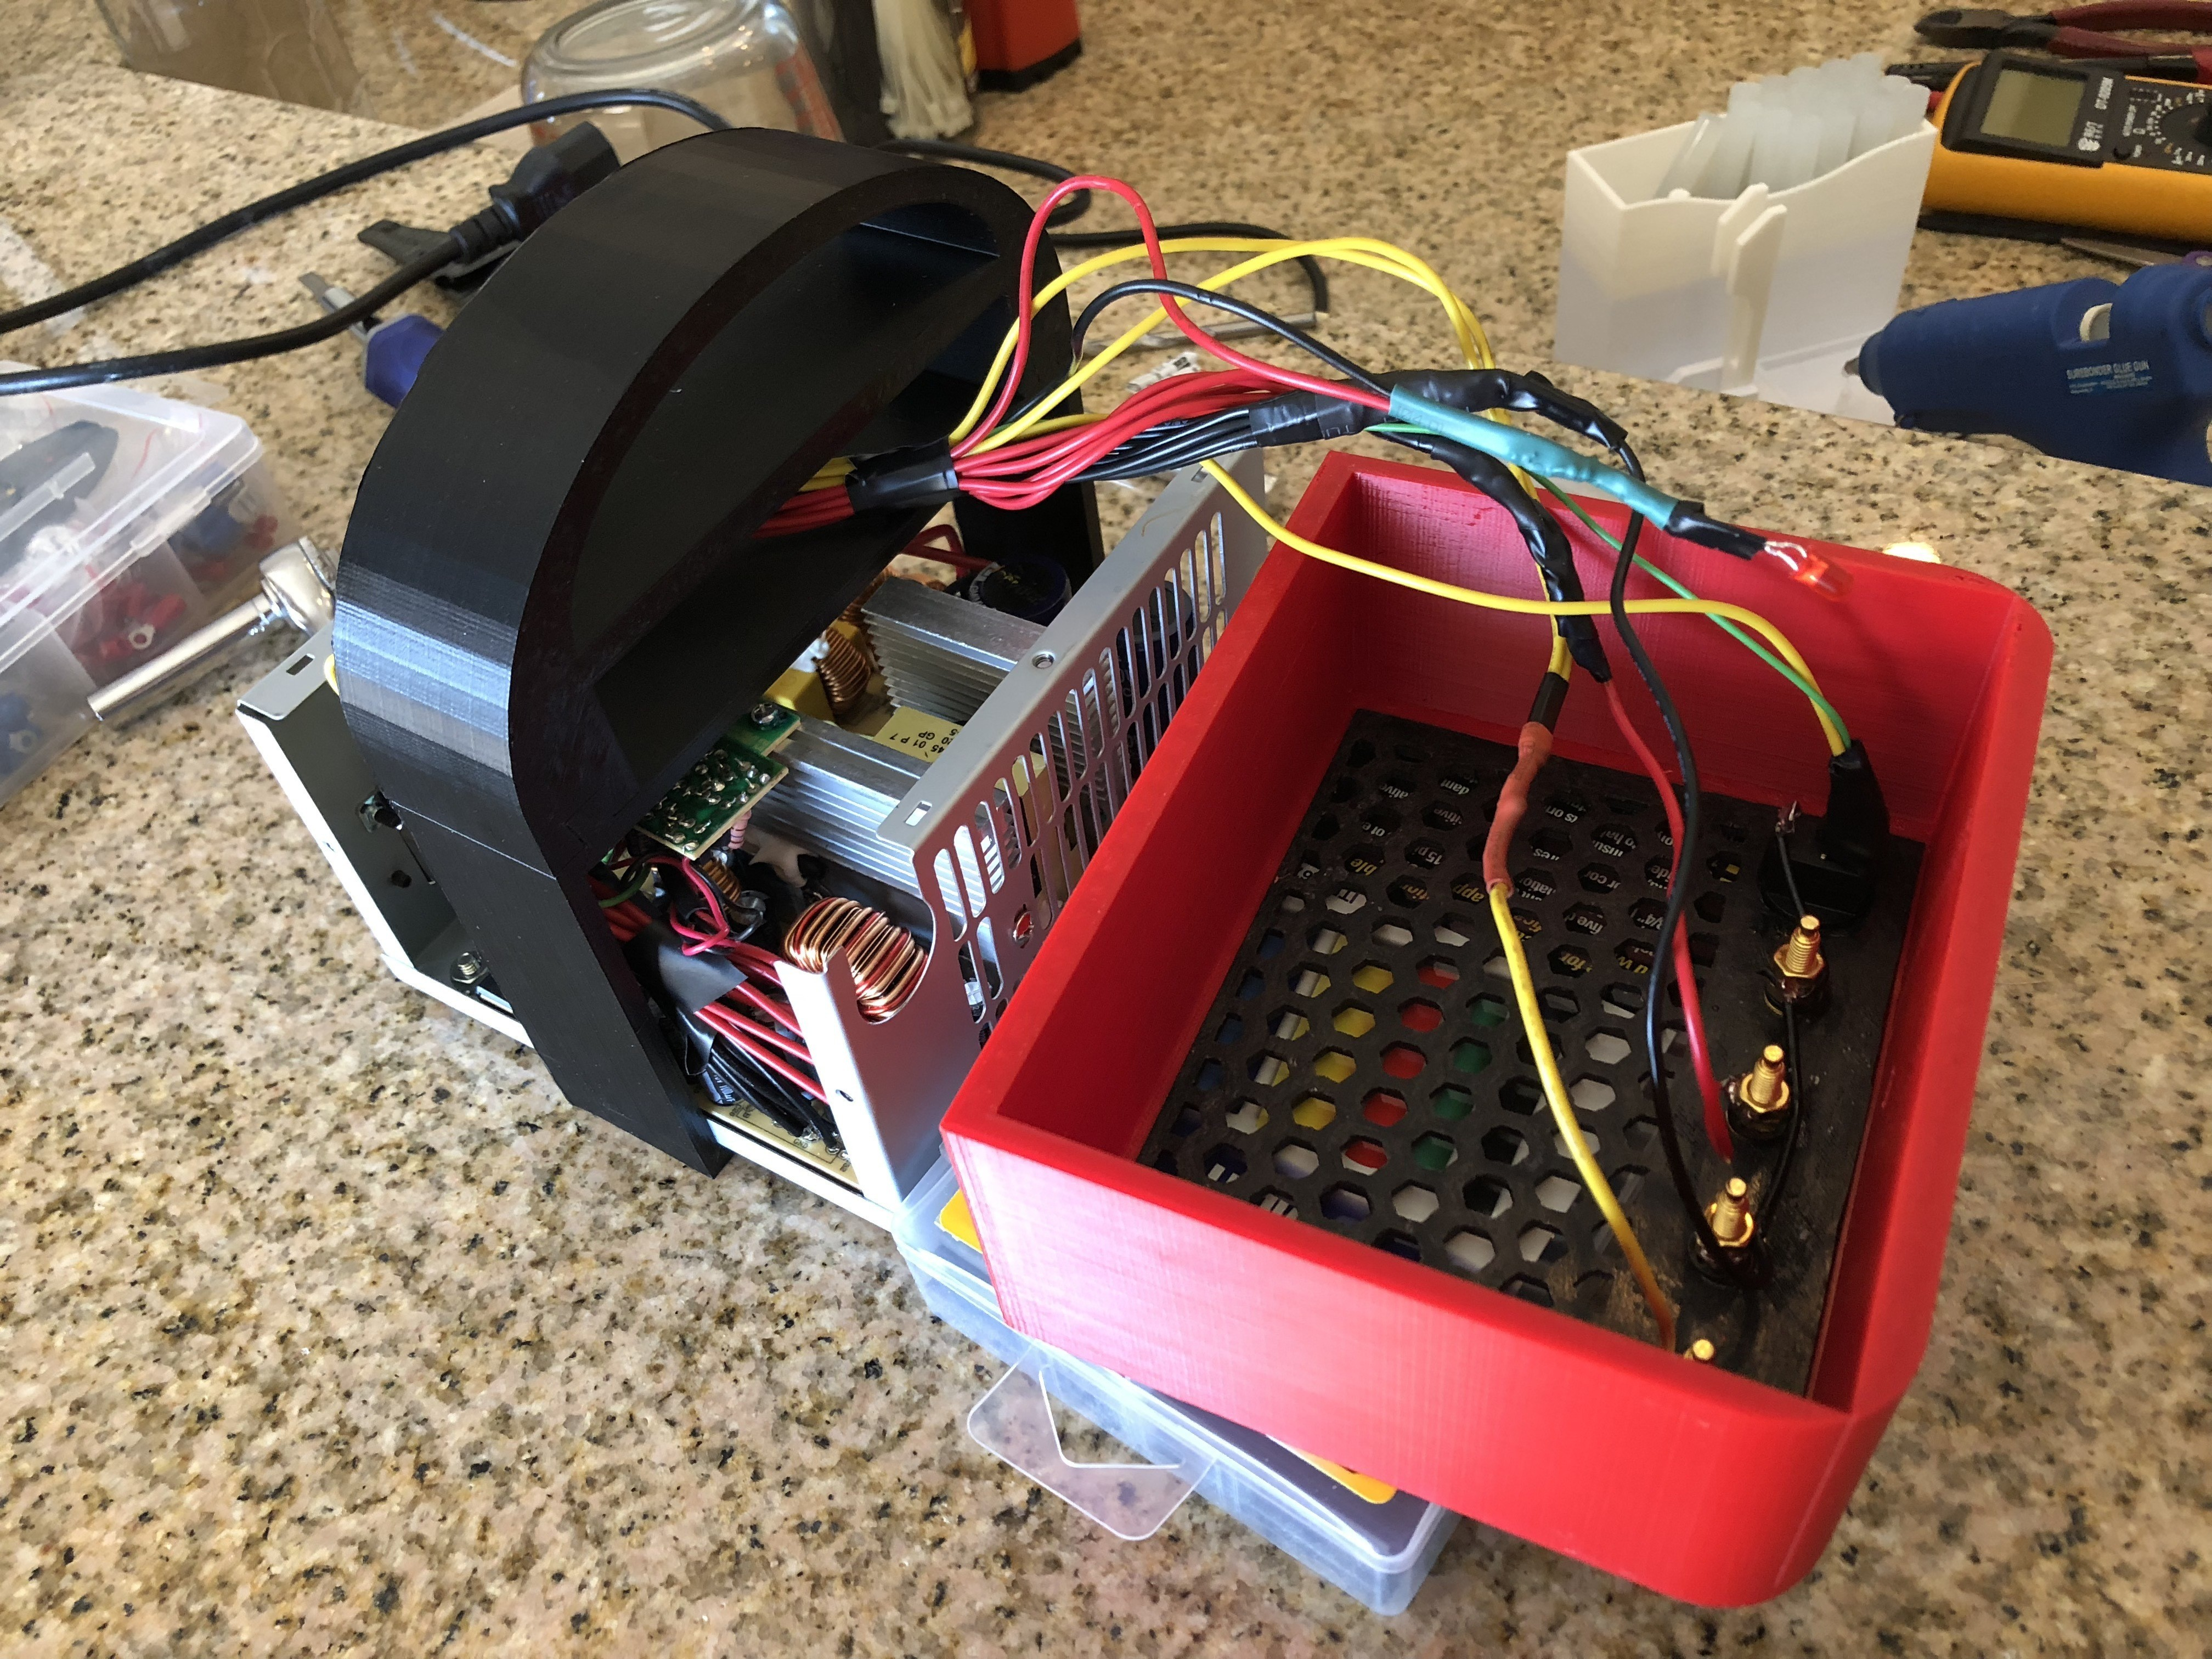 IMG_1781.jpg Download free STL file Another ATX Bench Power Supply w Cord Storage • 3D printer object, MeesterEduard